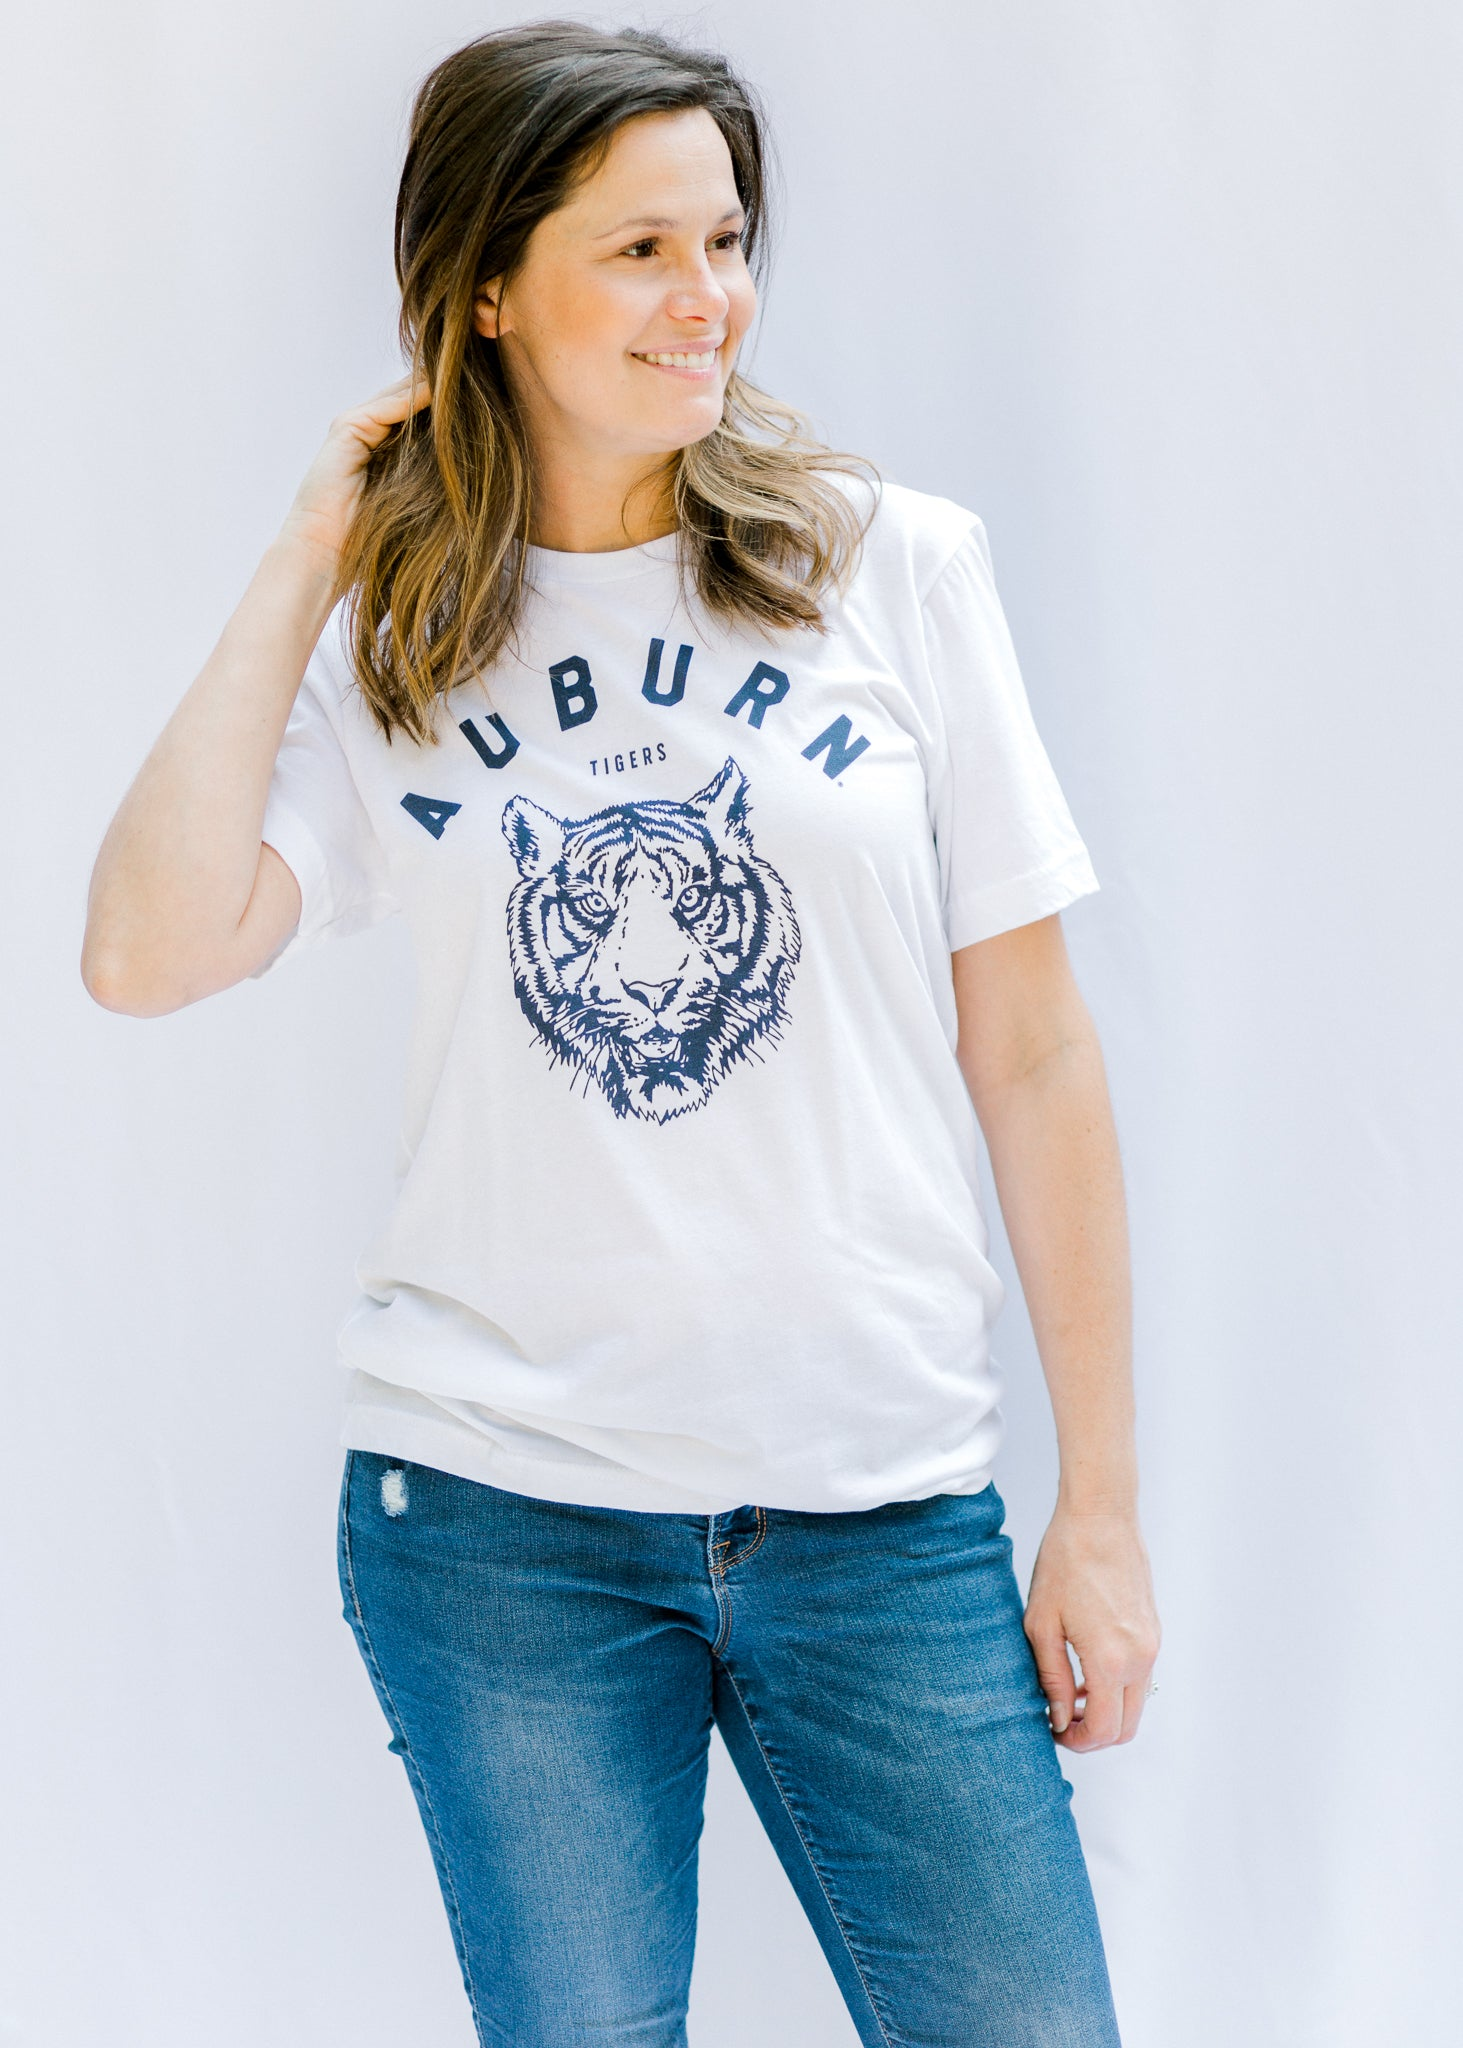 The Auburn Tigers Tee